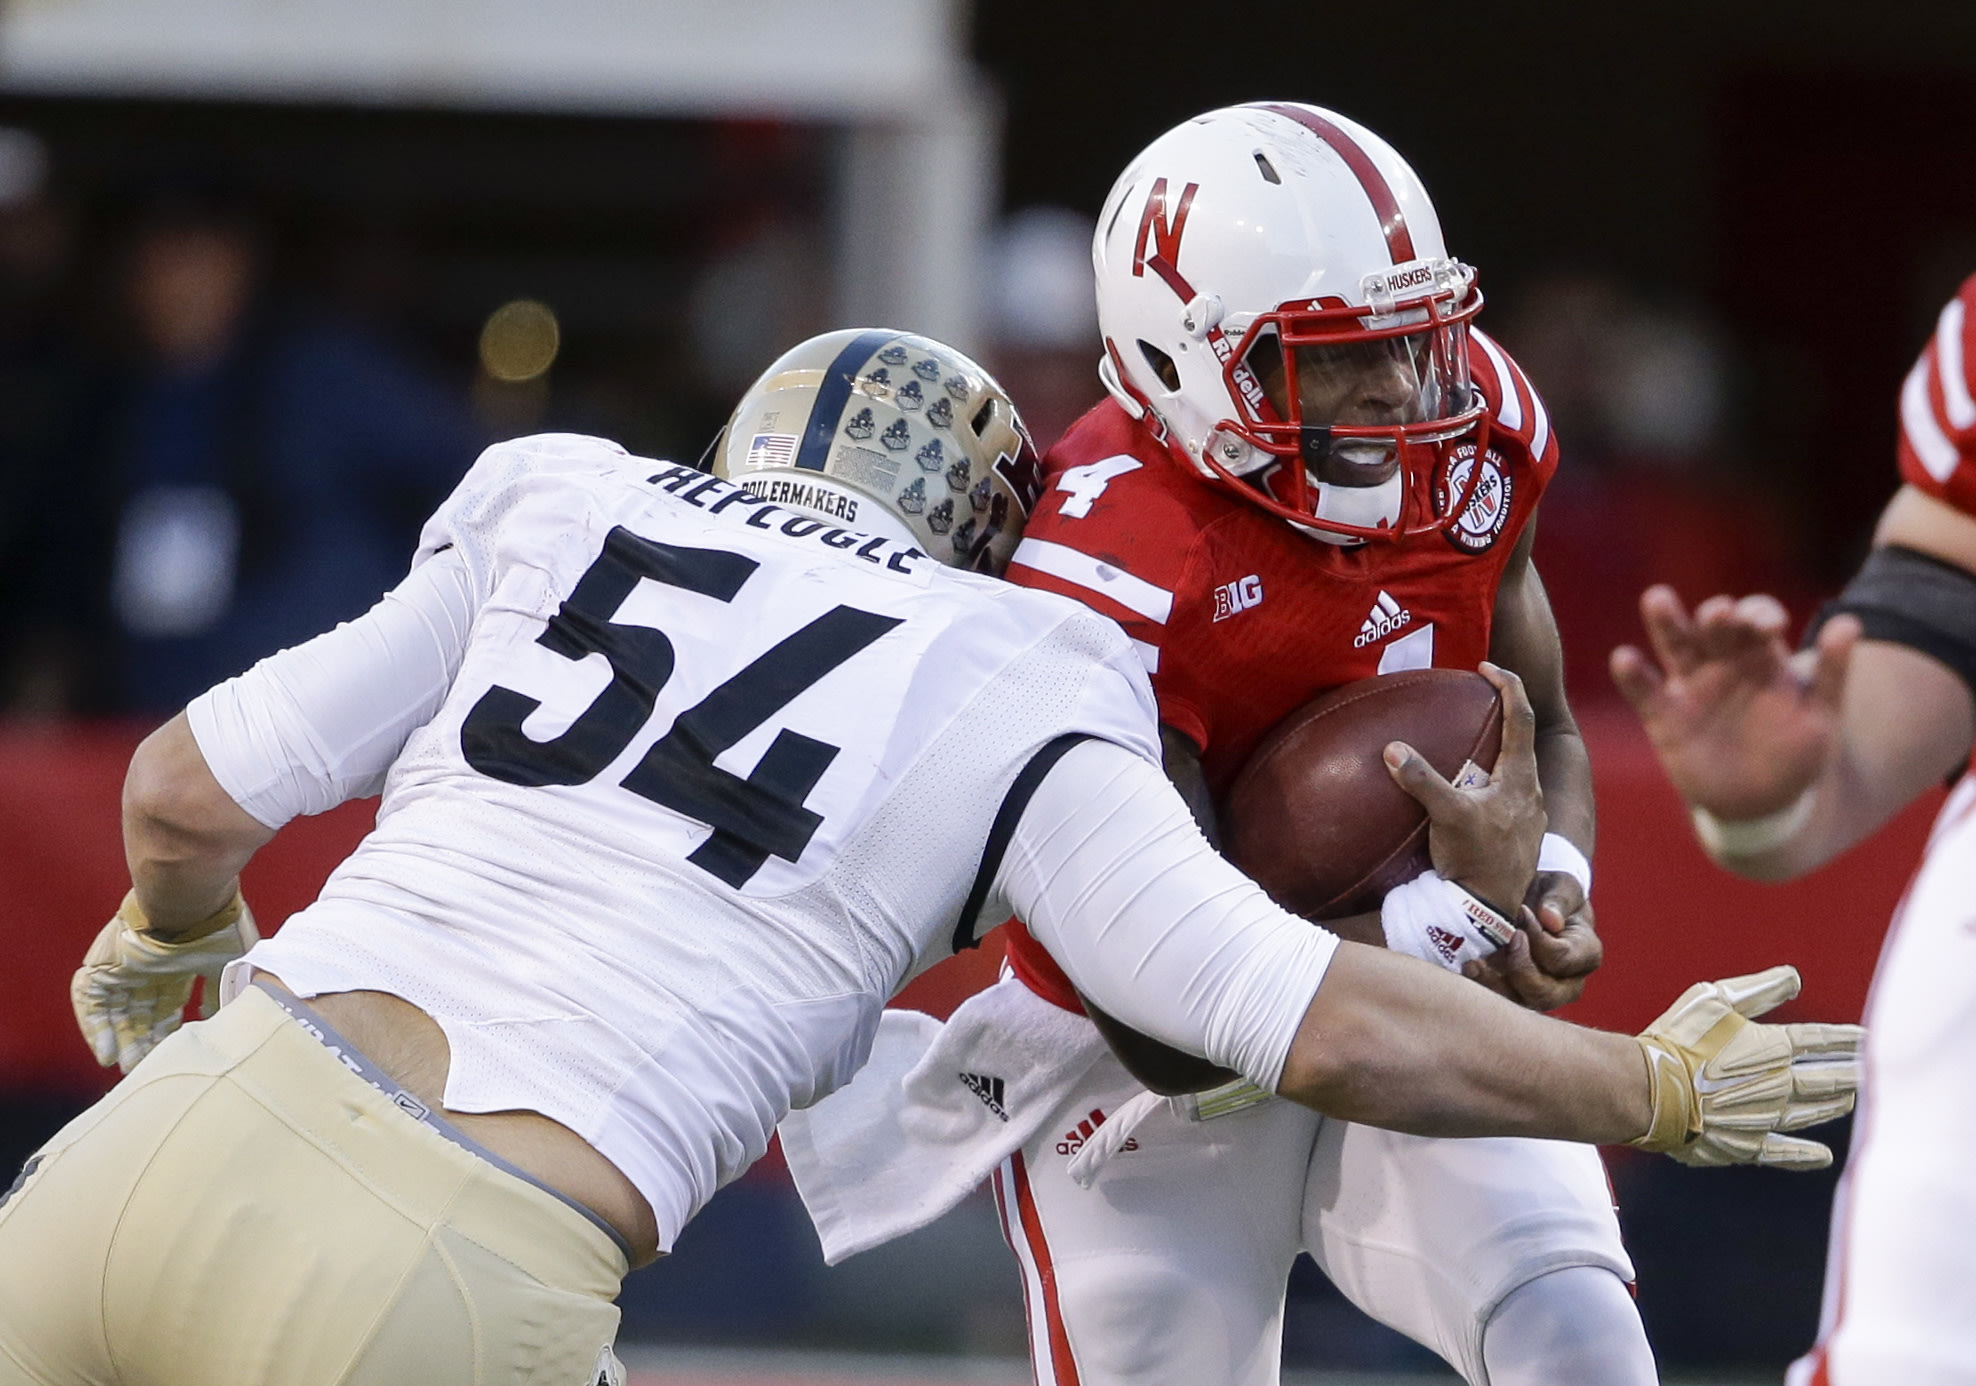 Jake Replogle has over 30 tackles for loss in the past three seasons. (Getty)